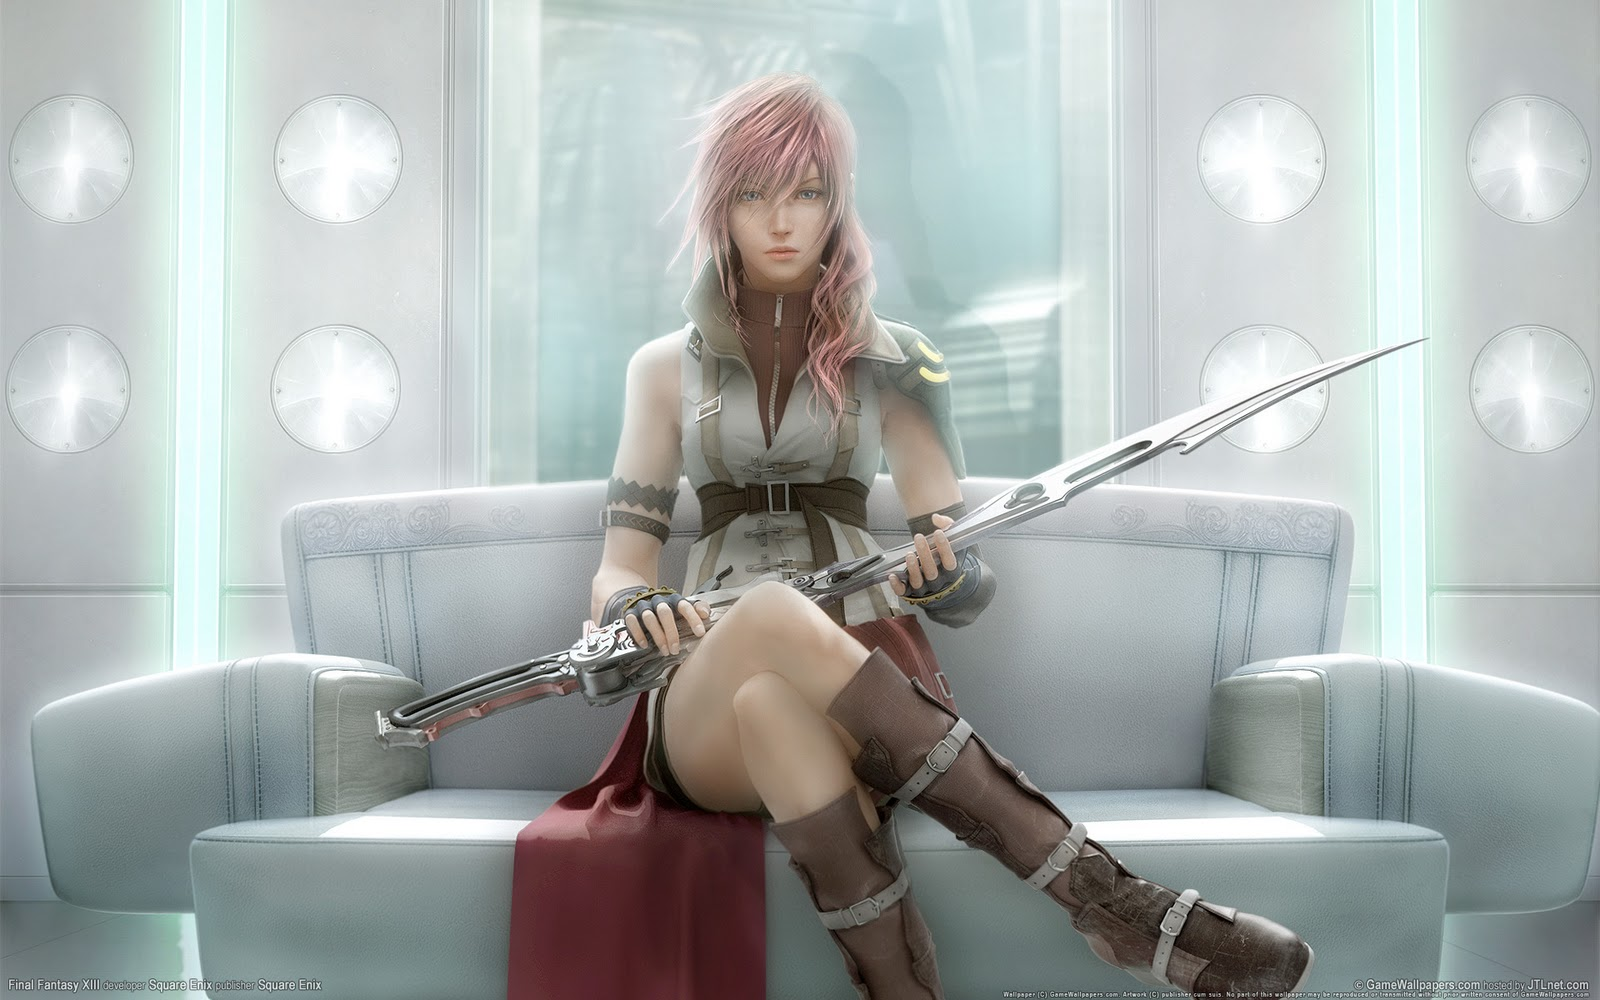 http://4.bp.blogspot.com/-eh-swE8EDK4/TyeyApZ3rbI/AAAAAAAADo4/LEW80dkIHag/s1600/The-best-top-desktop-final-fantasy-wallpapers-2-final-fantasy-xiii-wallpaper.jpg